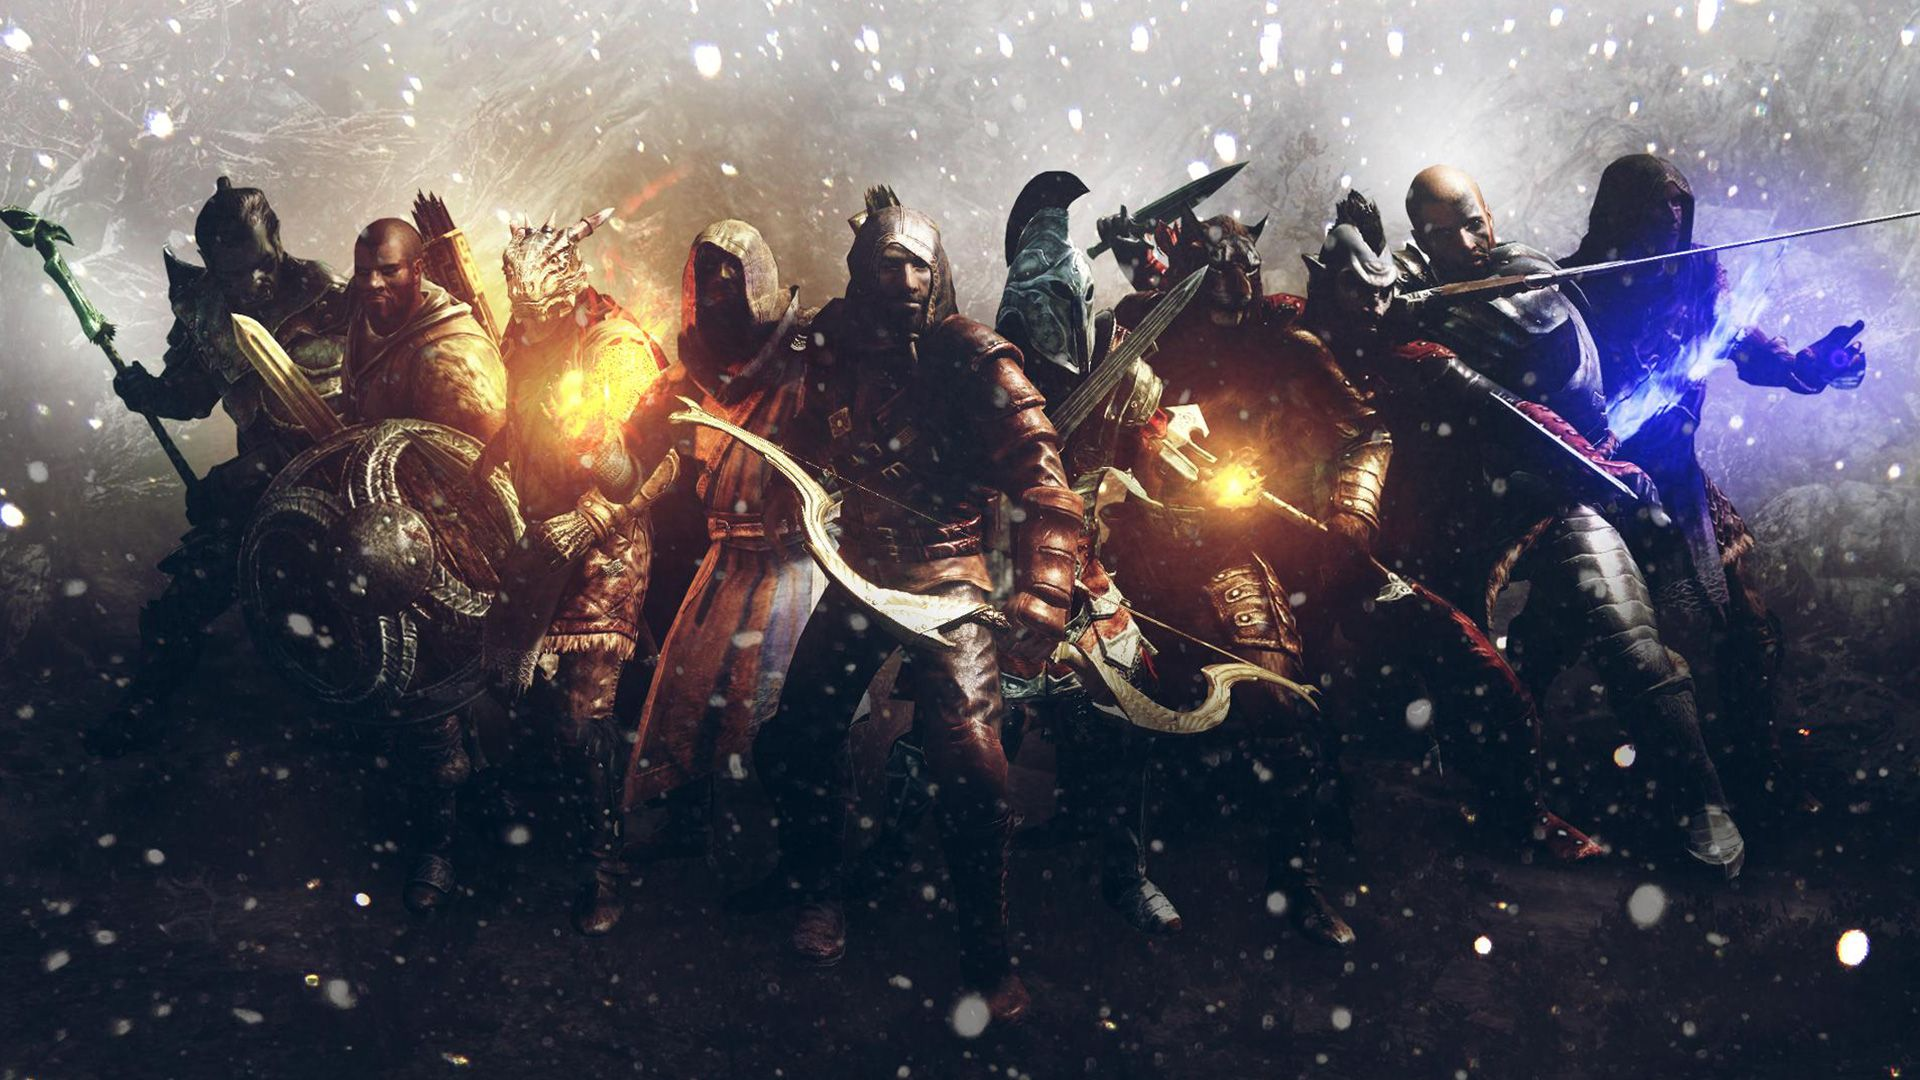 Epic Skyrim Wallpapers Top Free Epic Skyrim Backgrounds